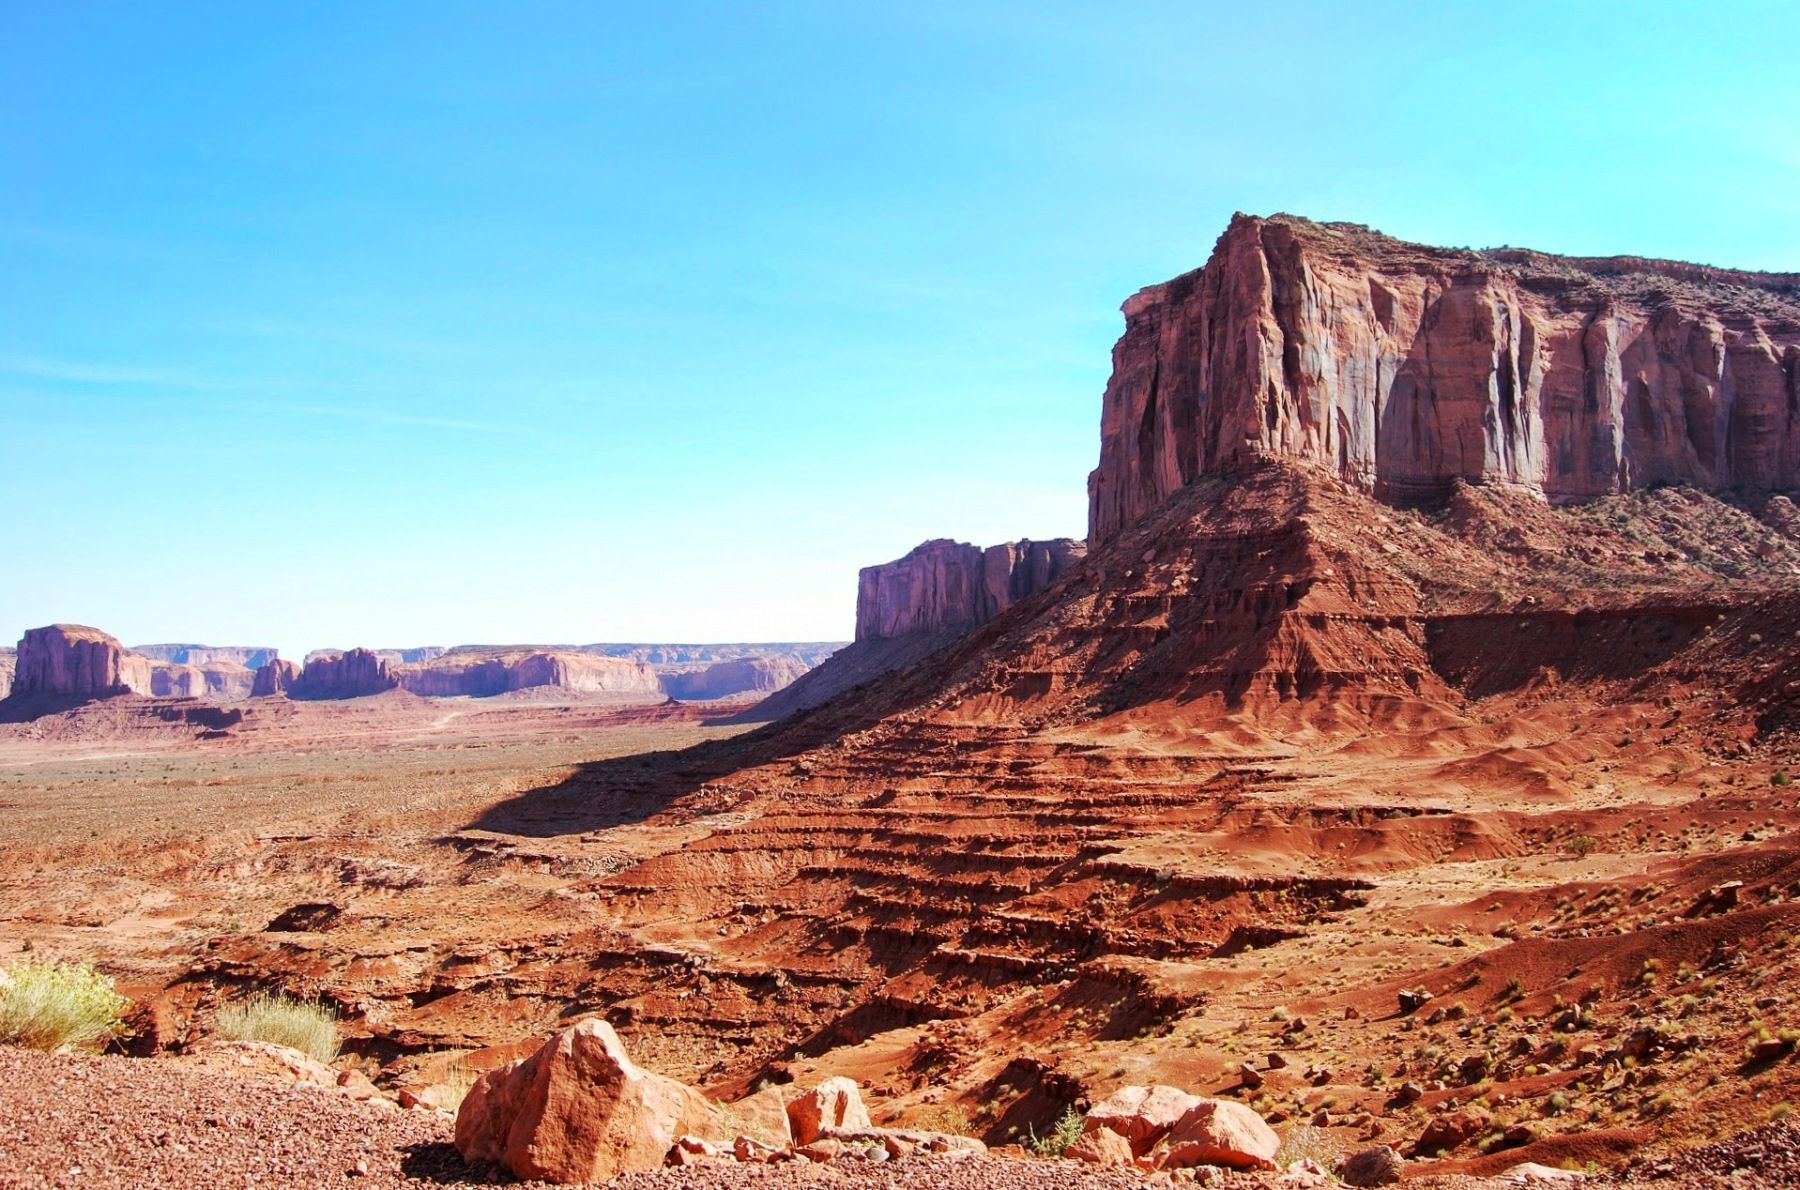 Arizona, Utah - Monument Valley